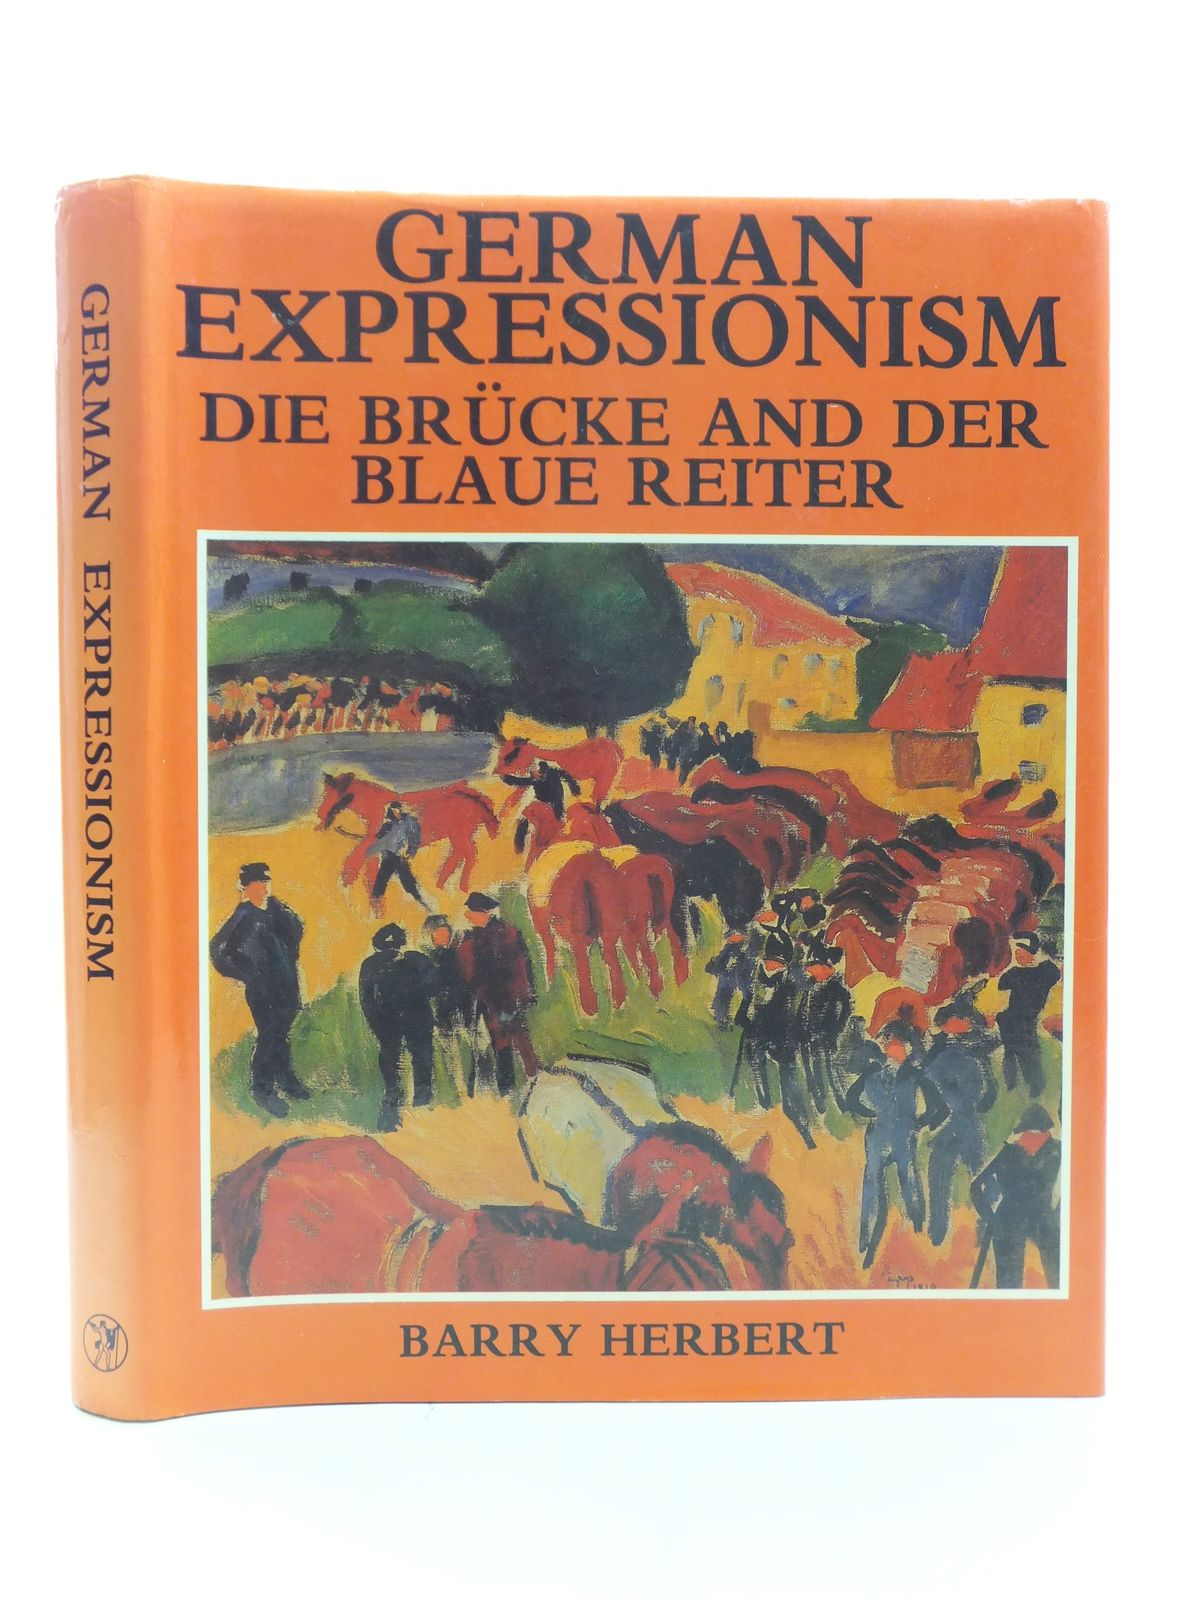 Photo of GERMAN EXPRESSIONISM DIE BRUCKE AND DER BLAUE REITER written by Herbert, Barry published by Jupiter Books (STOCK CODE: 2113881)  for sale by Stella & Rose's Books